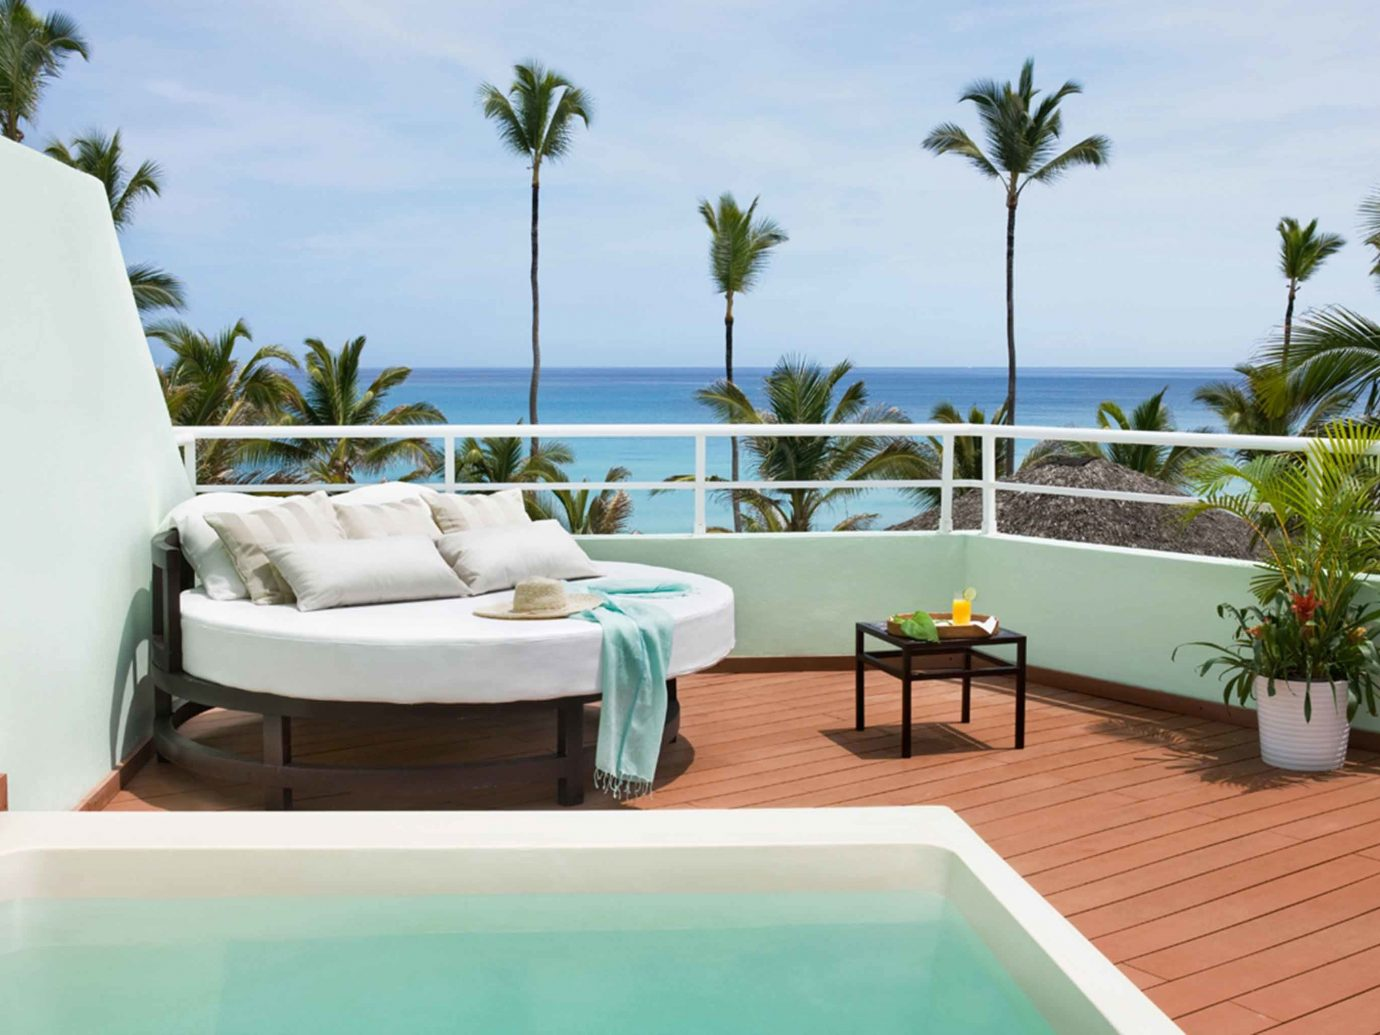 All-Inclusive Resorts Beachfront Hip Hot tub Hot tub/Jacuzzi Hotels Luxury Modern News Patio Romance Trip Ideas sky swimming pool property Villa Resort caribbean leisure vacation estate condominium real estate home cottage apartment furniture